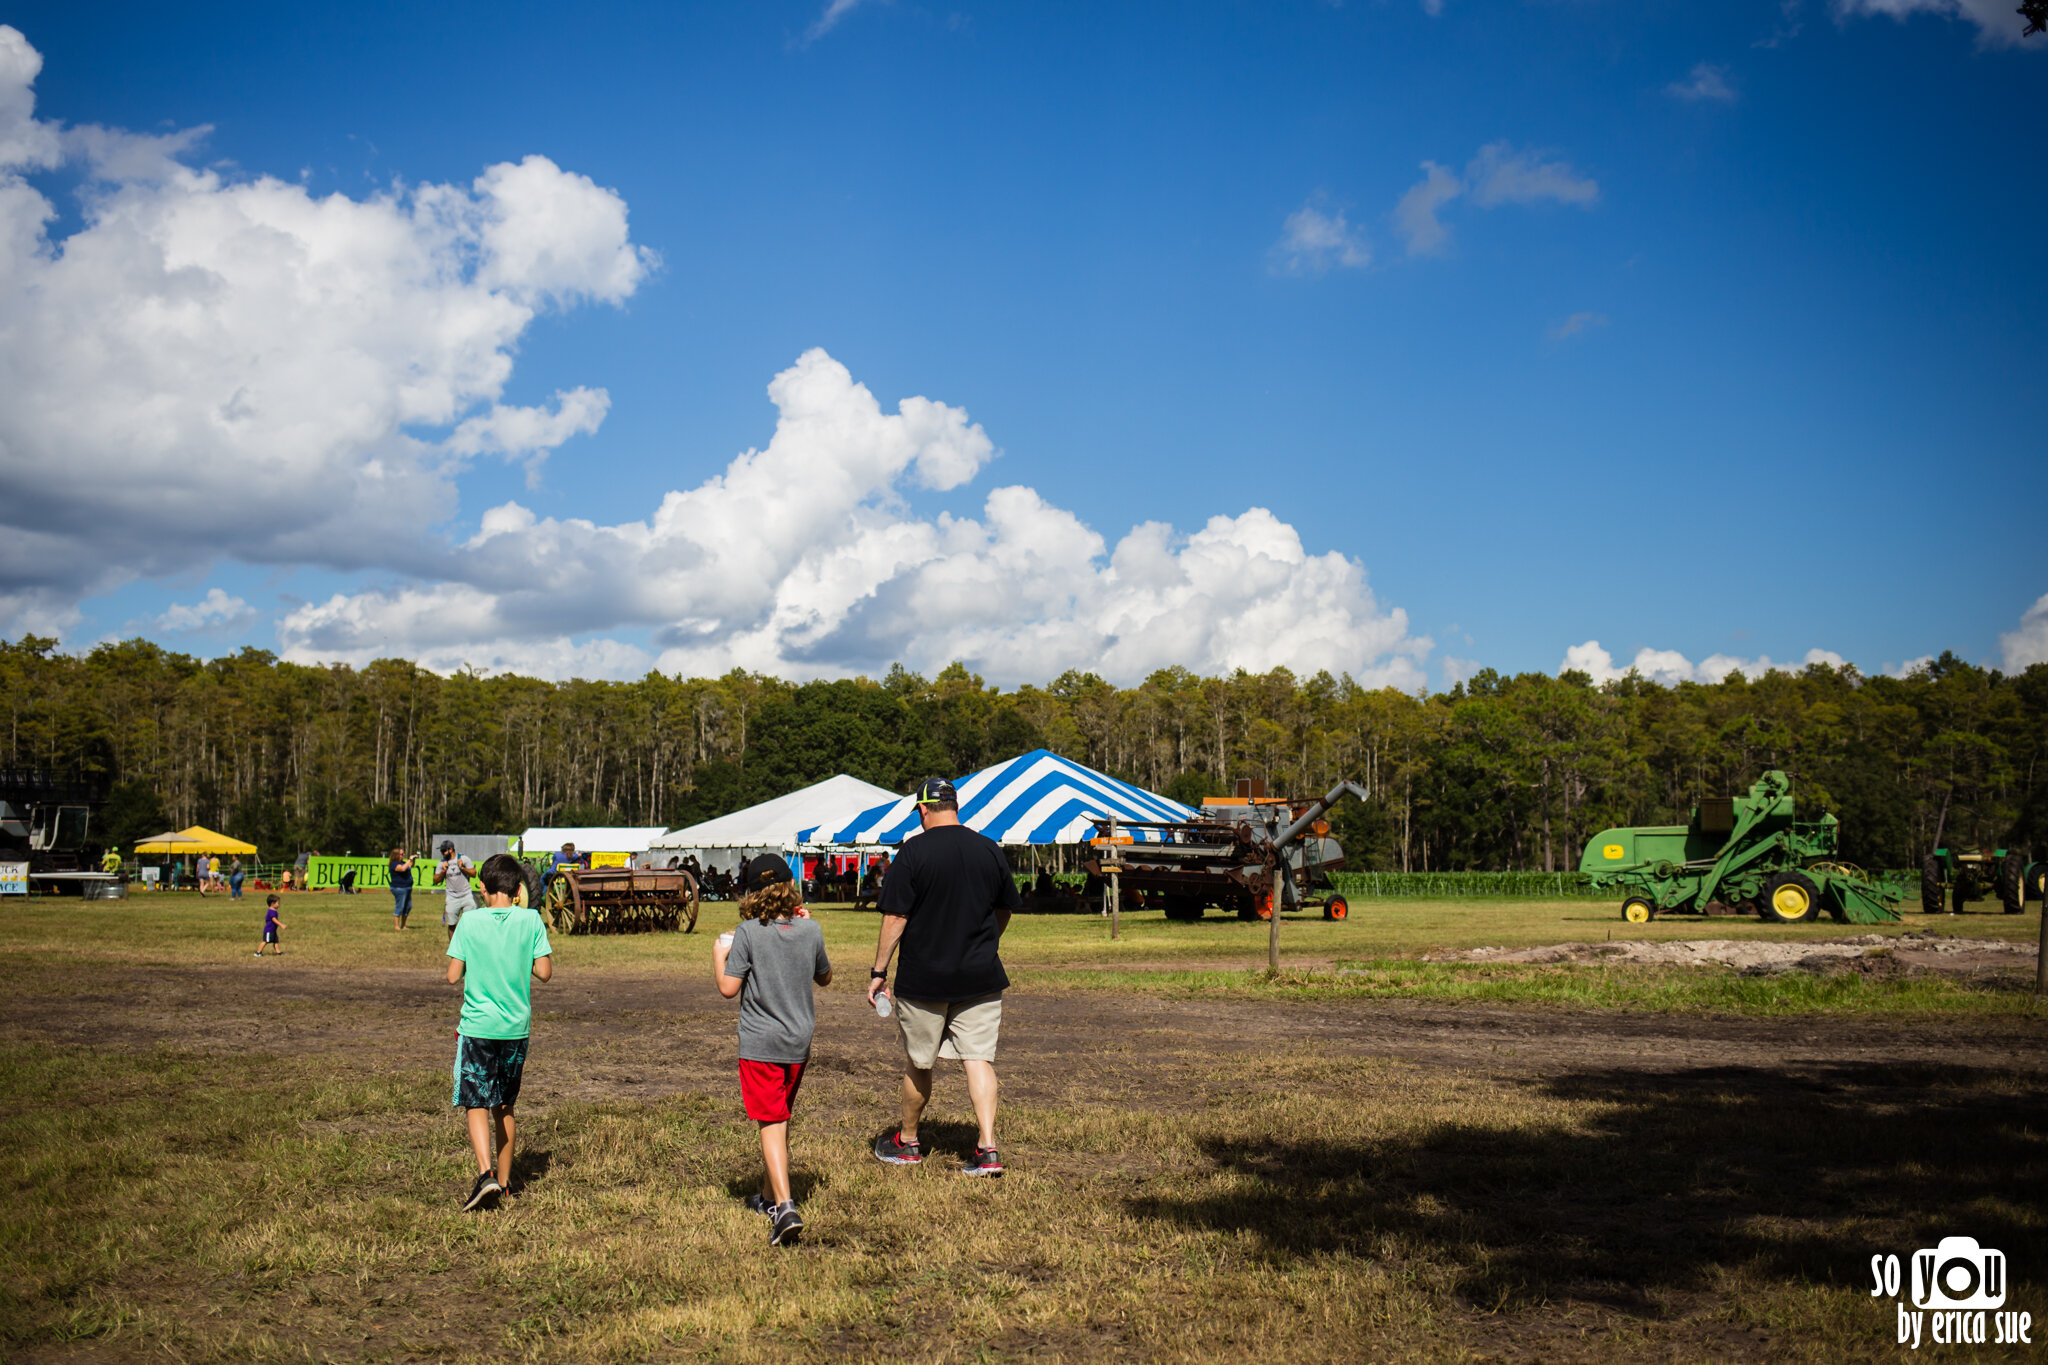 so-you-by-erica-sue-disney-photography-family-mickey-not-so-scary-partin-ranch-corn-maze-old-town-orlando-4308.jpg